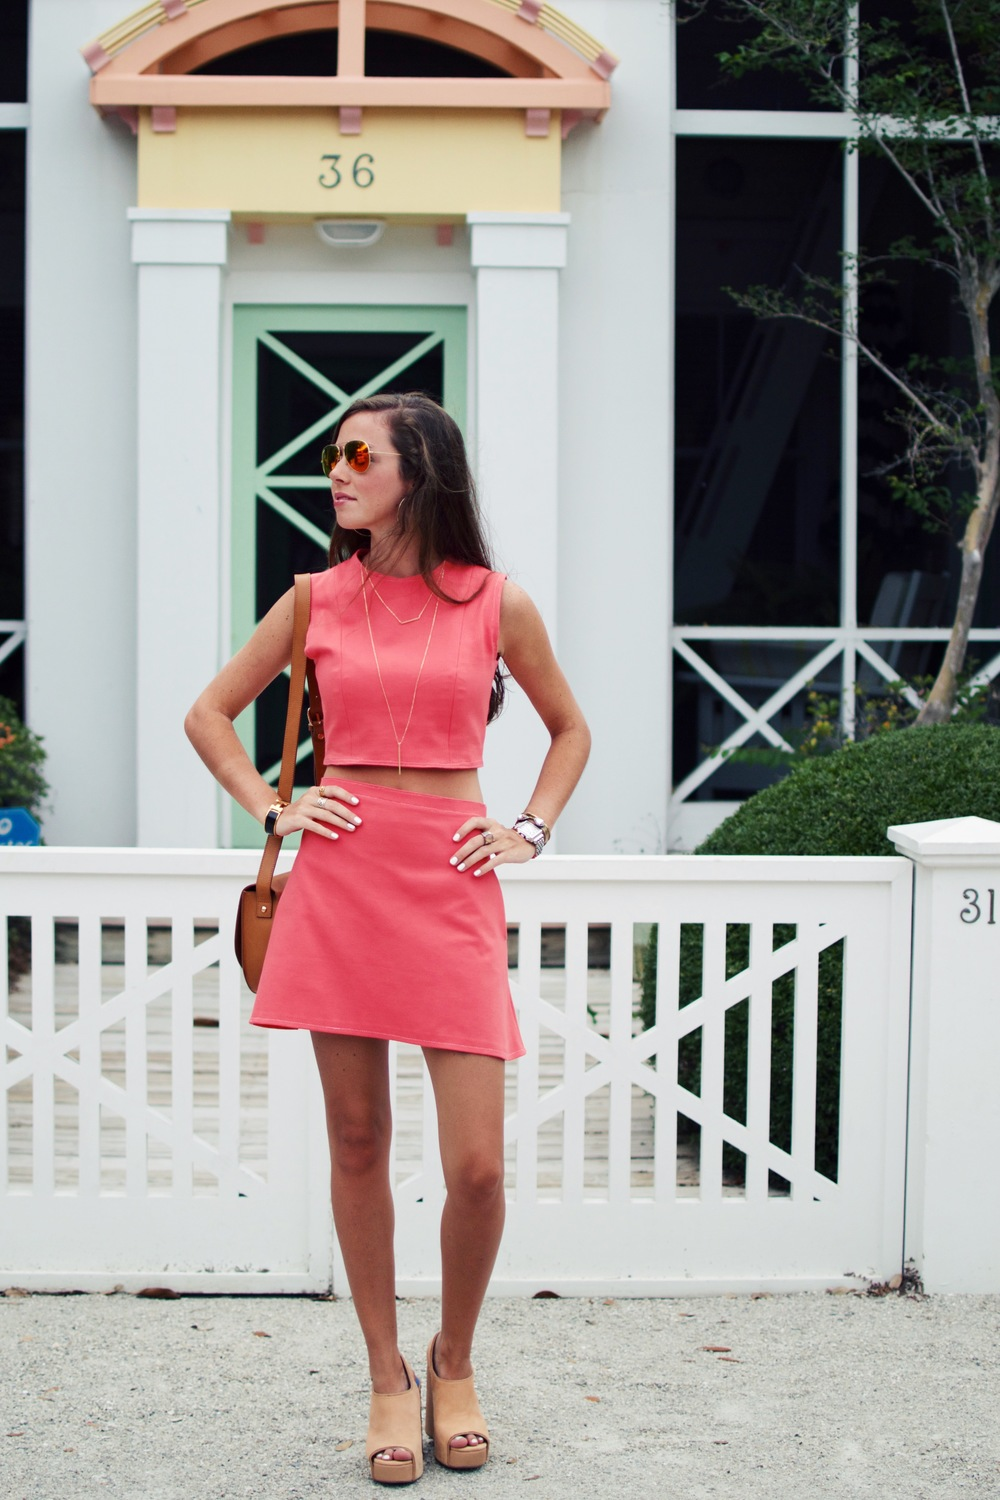 designs by lcb coral two piece0.jpg